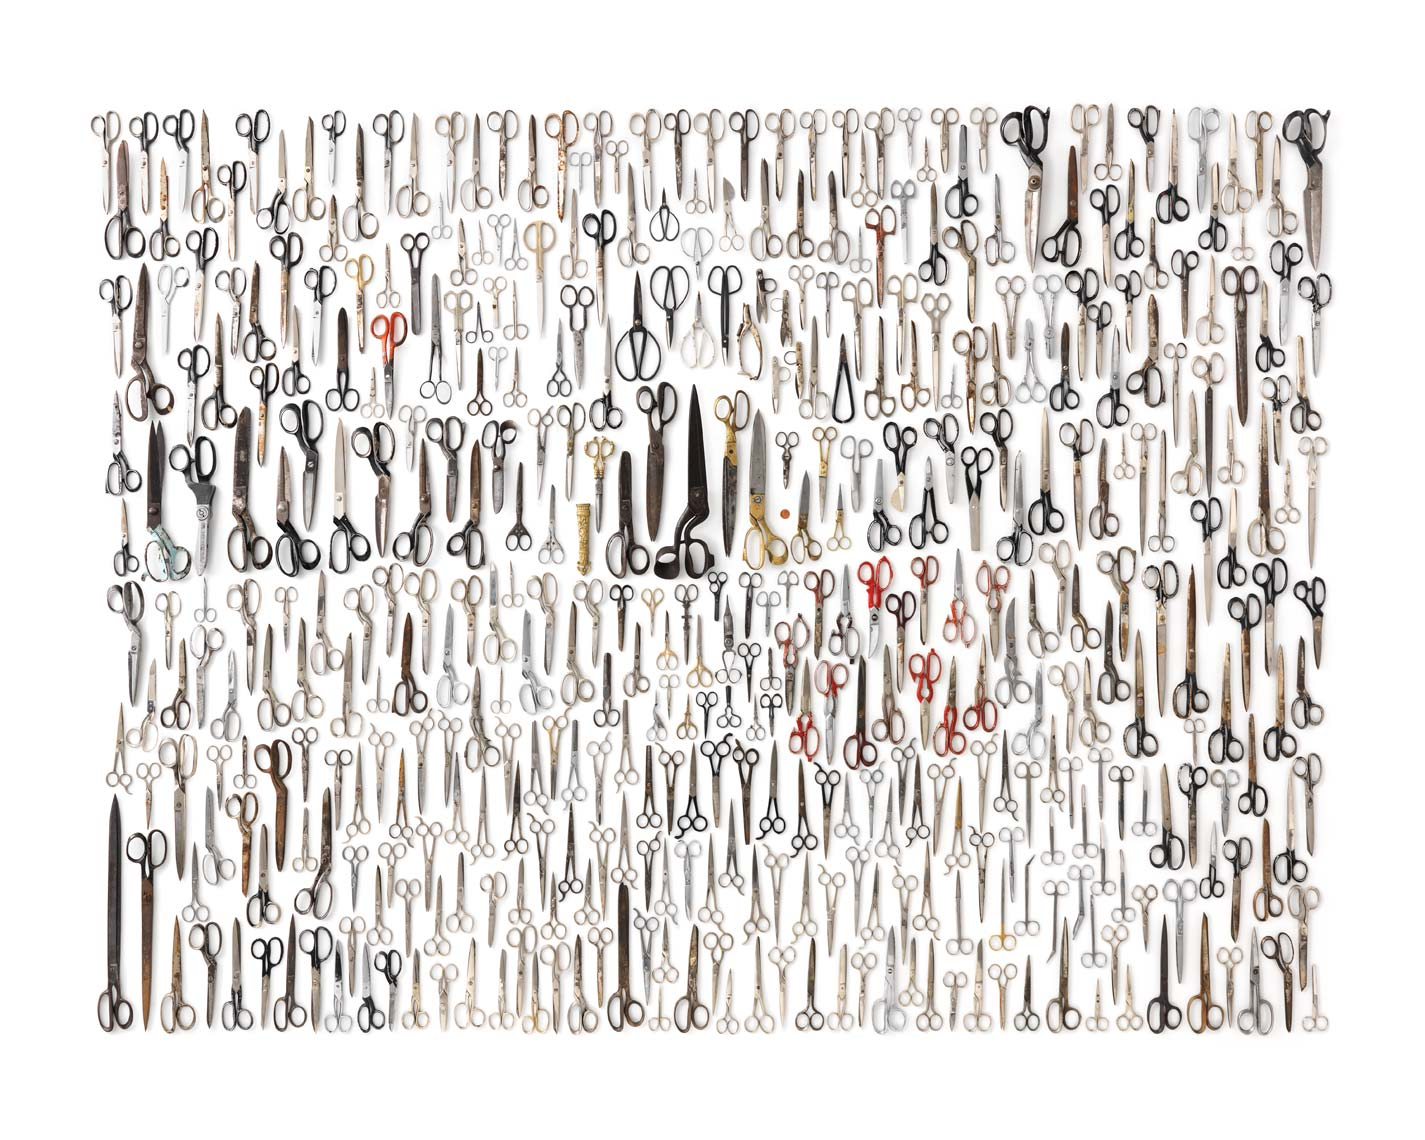 enormous scissor collection on a white background